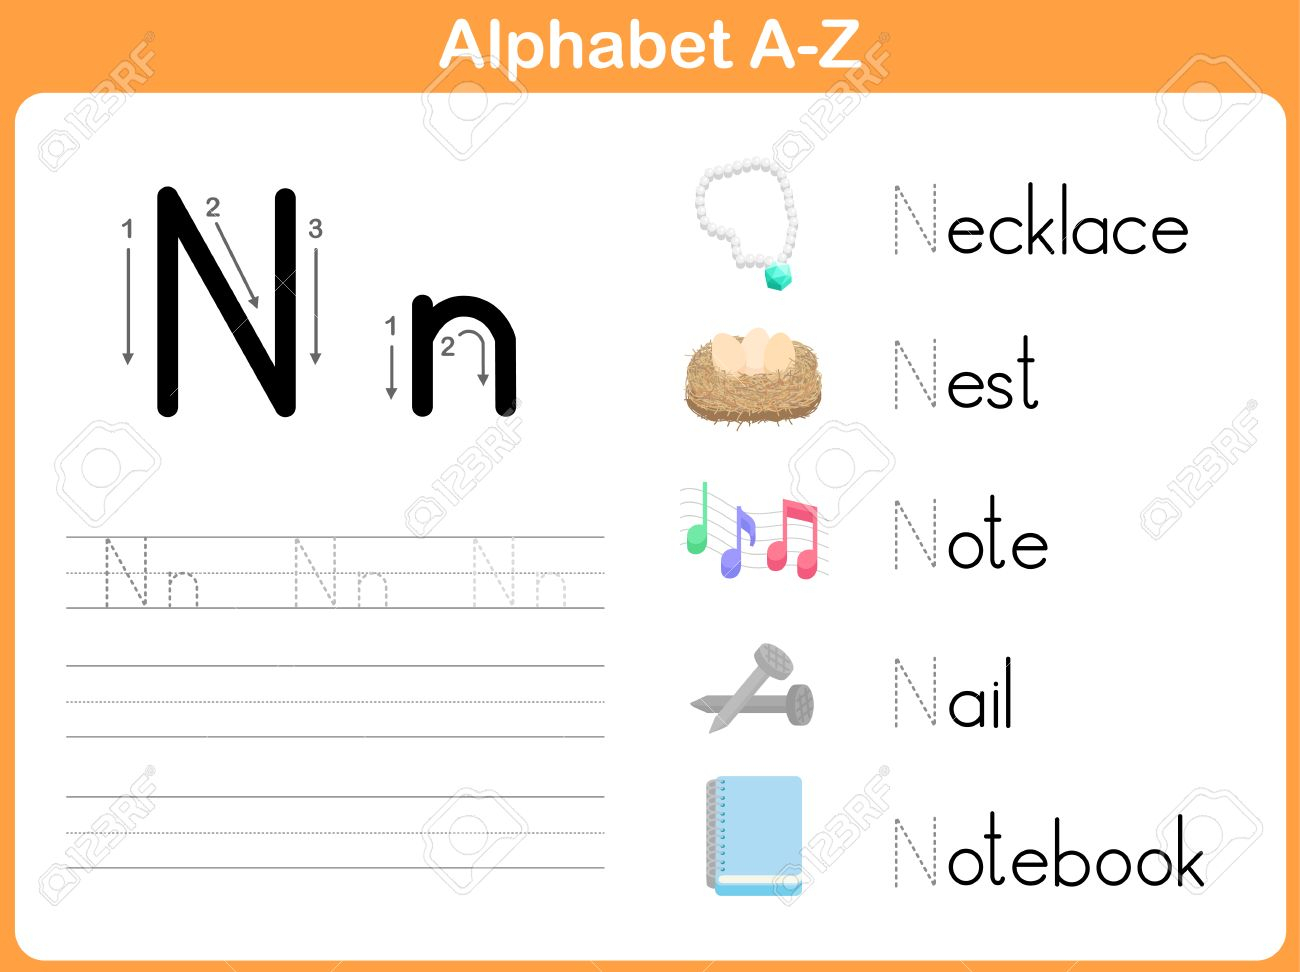 Alphabet Tracing Worksheet: Writing A-Z for A-Z Alphabet Tracing